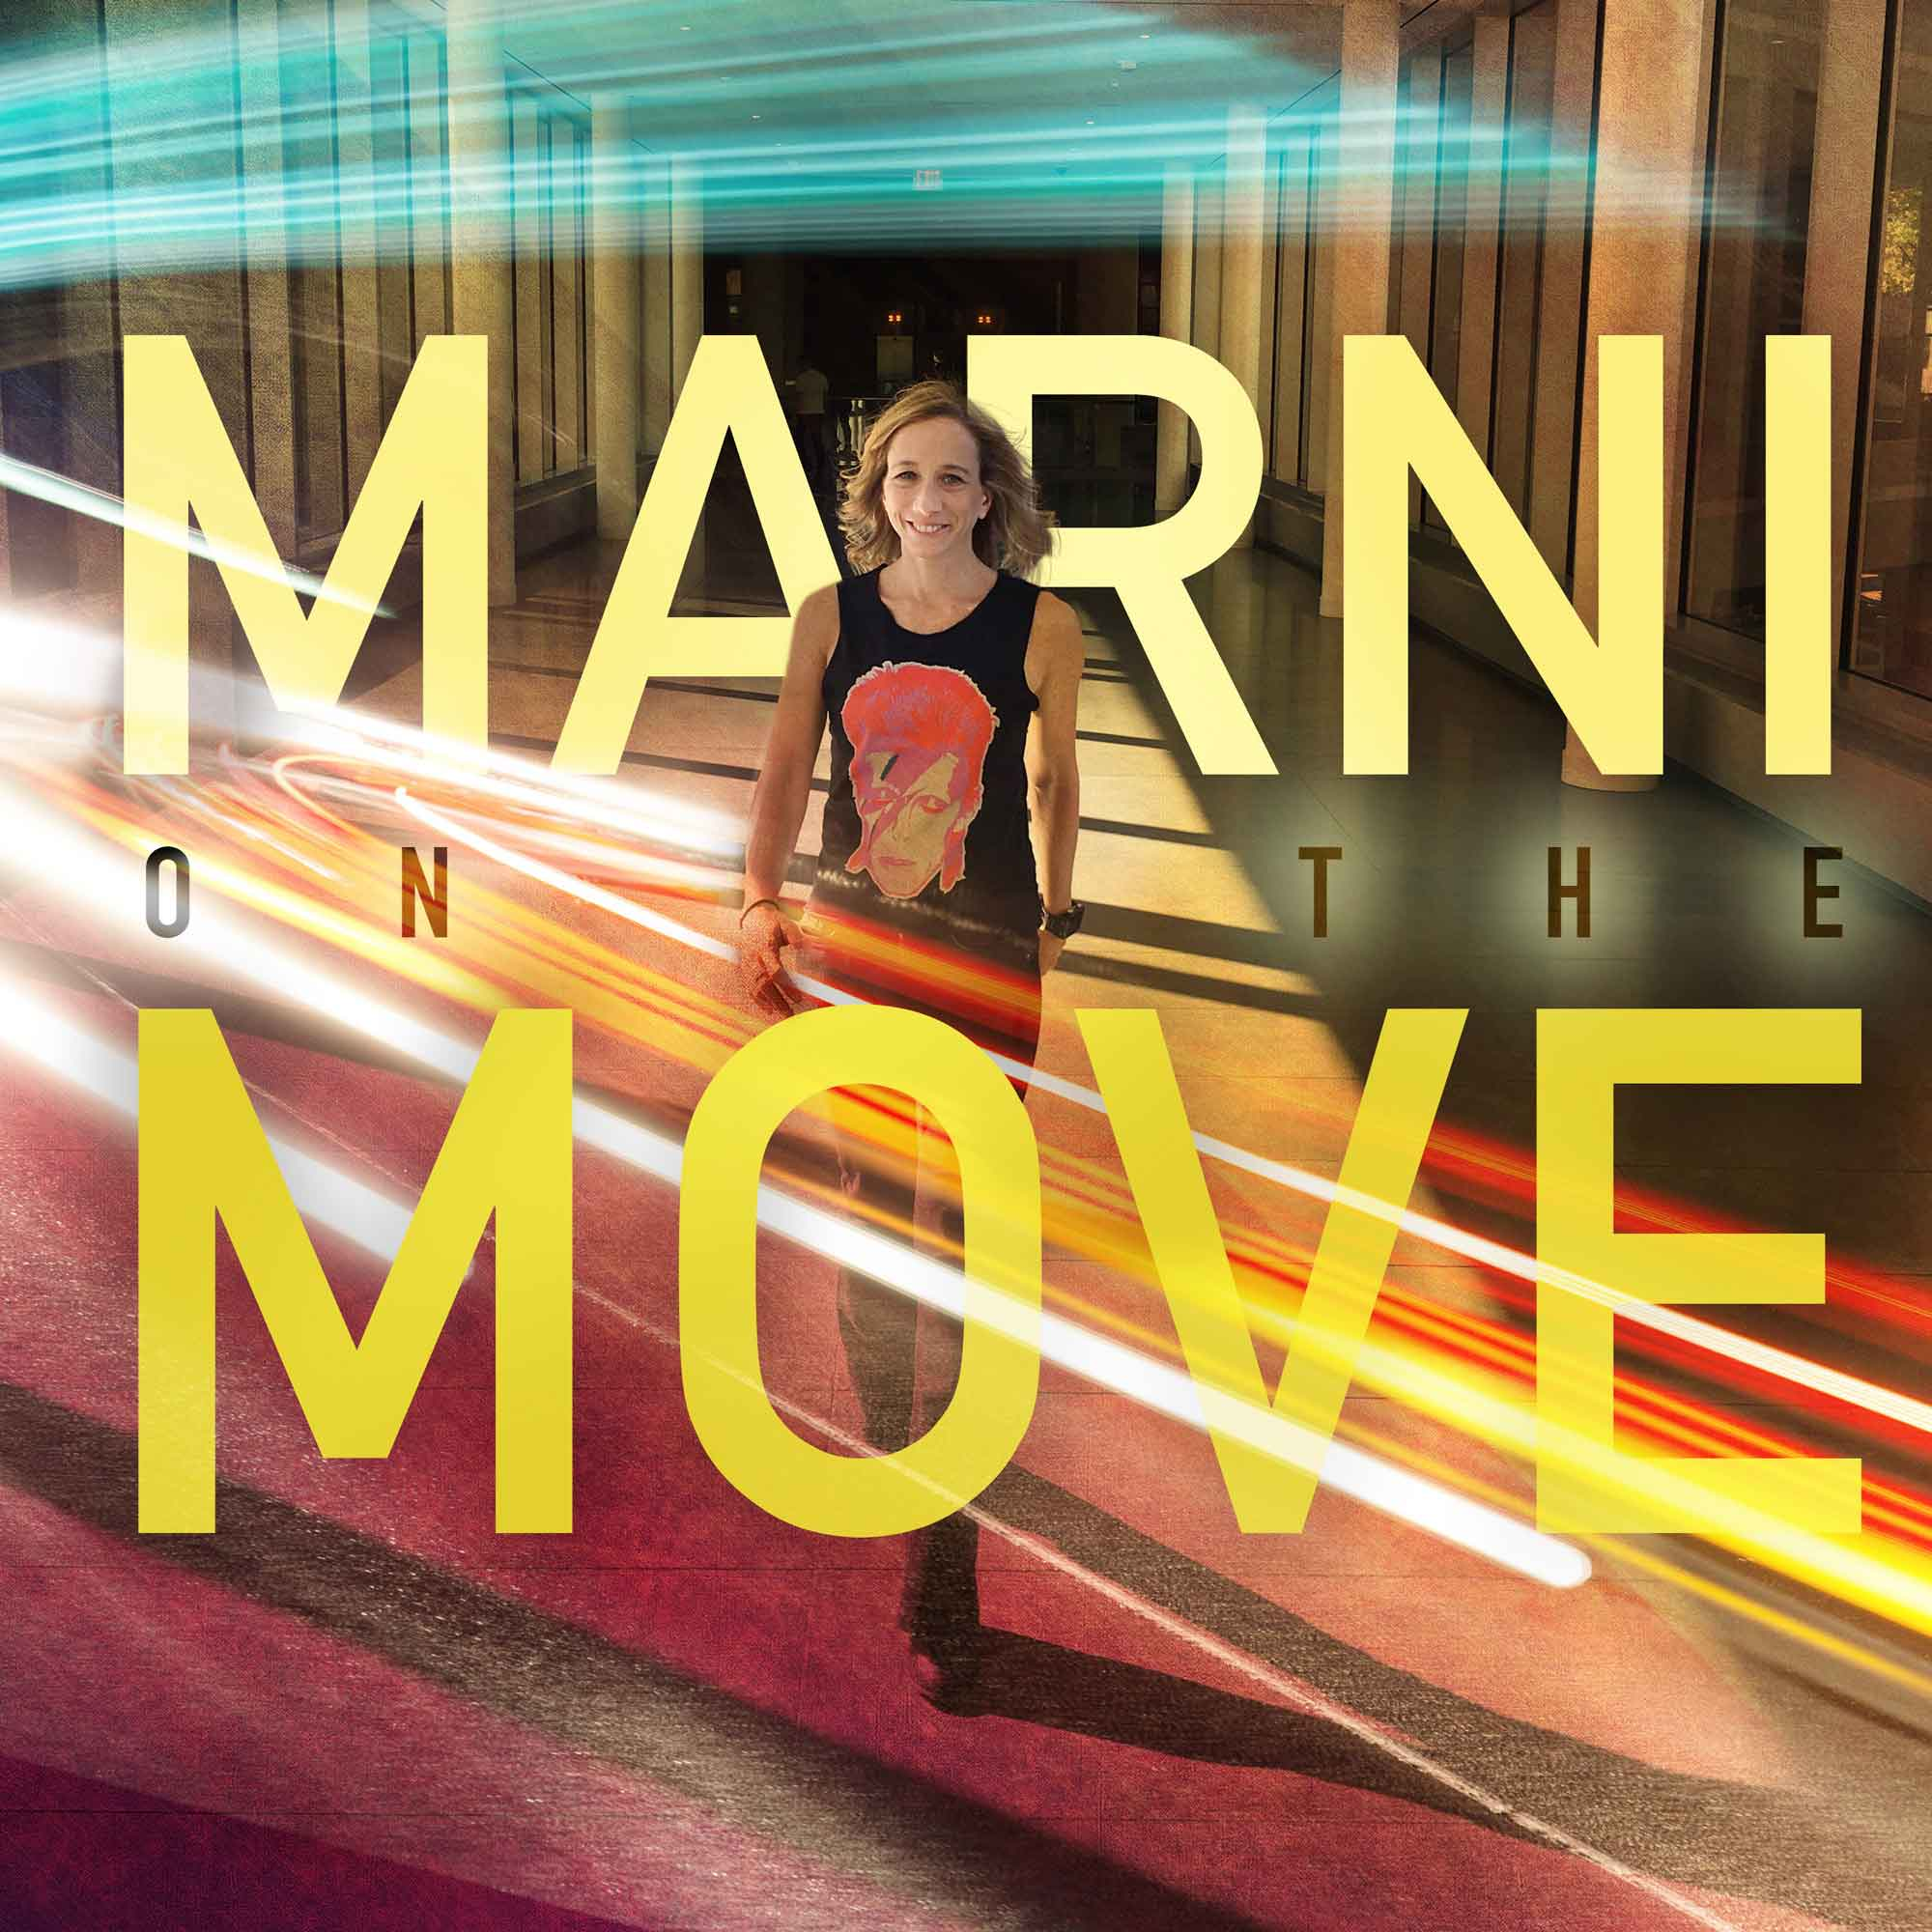 Marni on the move - Athletes, entrepreneurs, experts and the workout and wellness routines that fuel them for success.